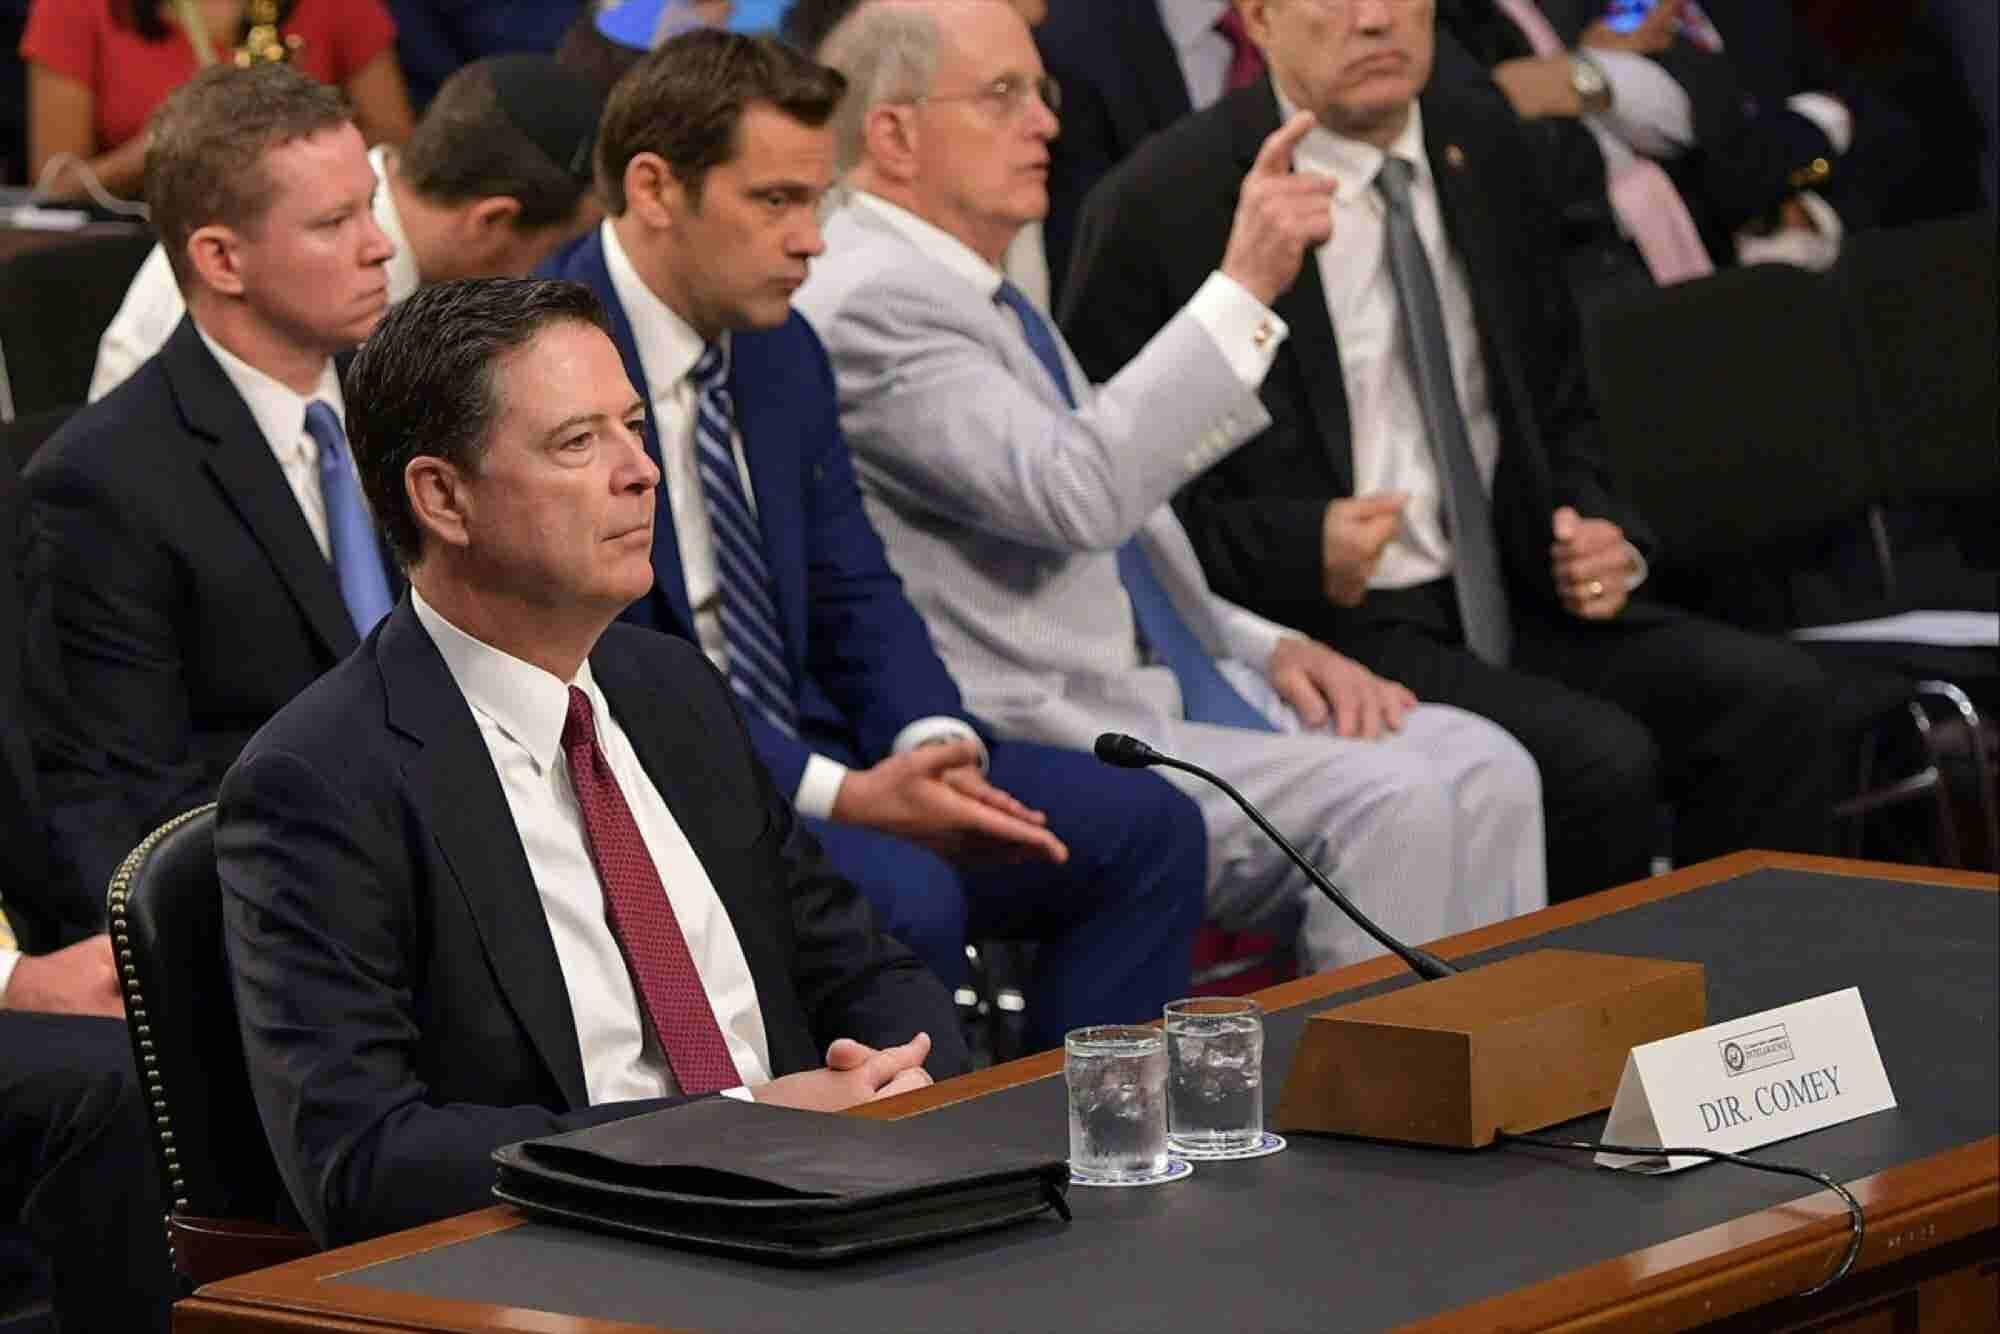 How to Watch James Comey's Testimony Before Congress Online